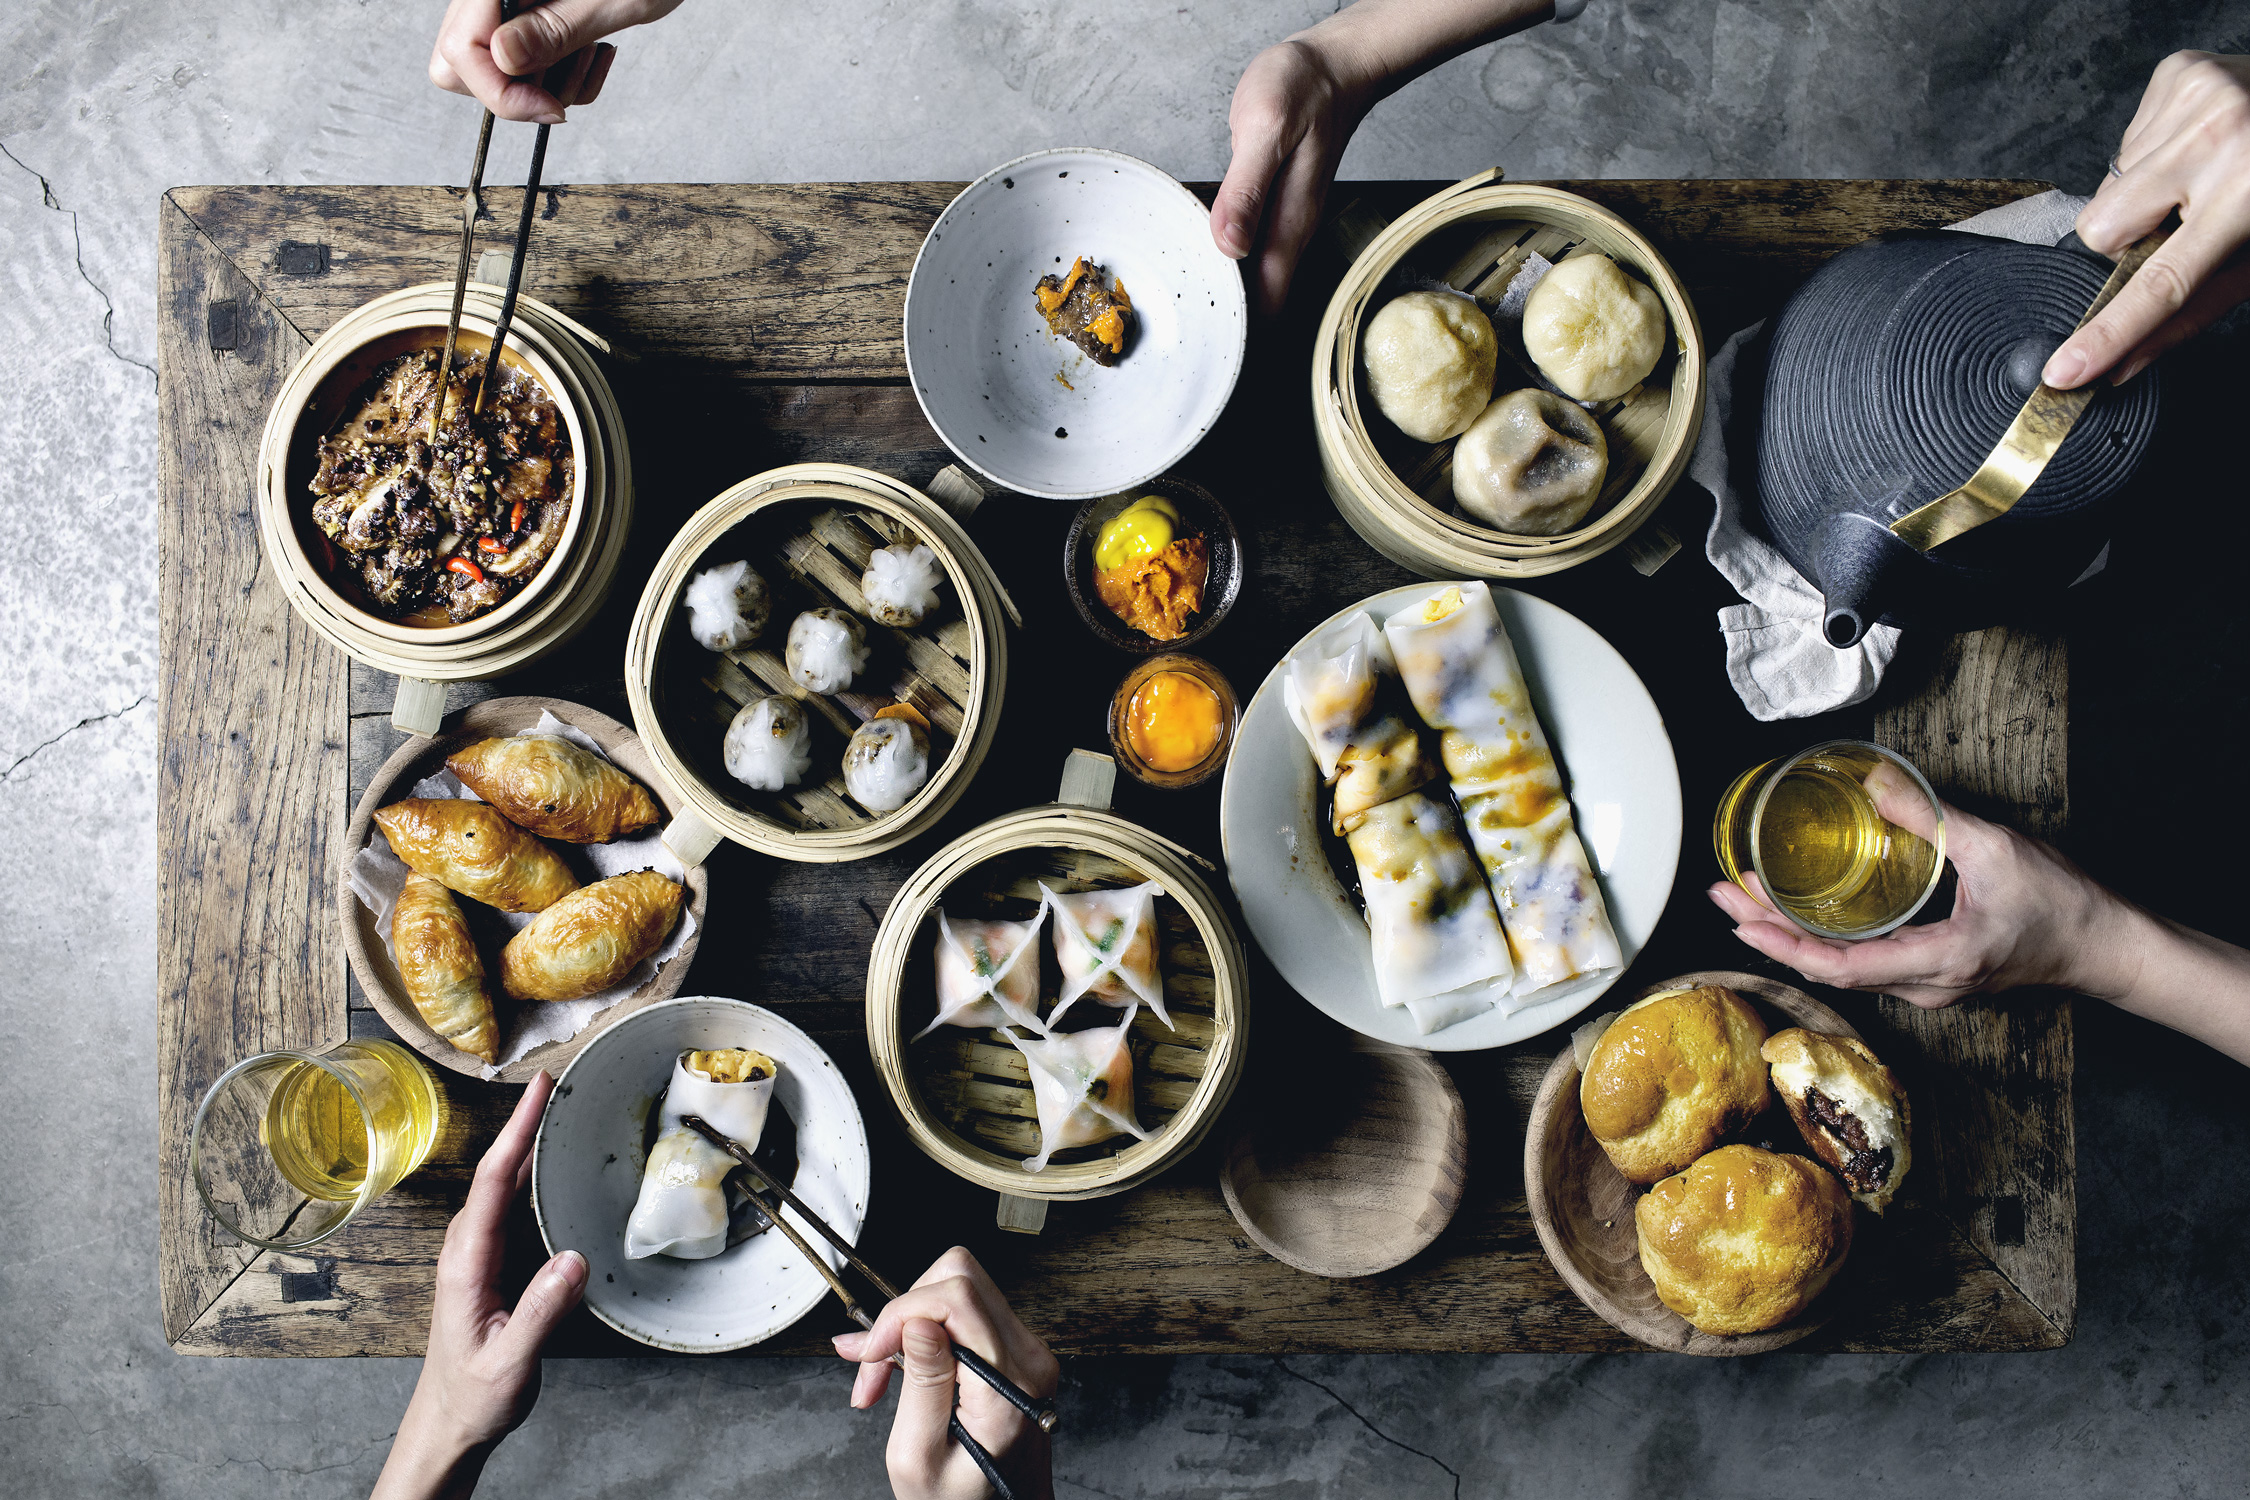 DIM SUM MONTH FINALE: Tapenade short ribs, plus dim sum party game plan